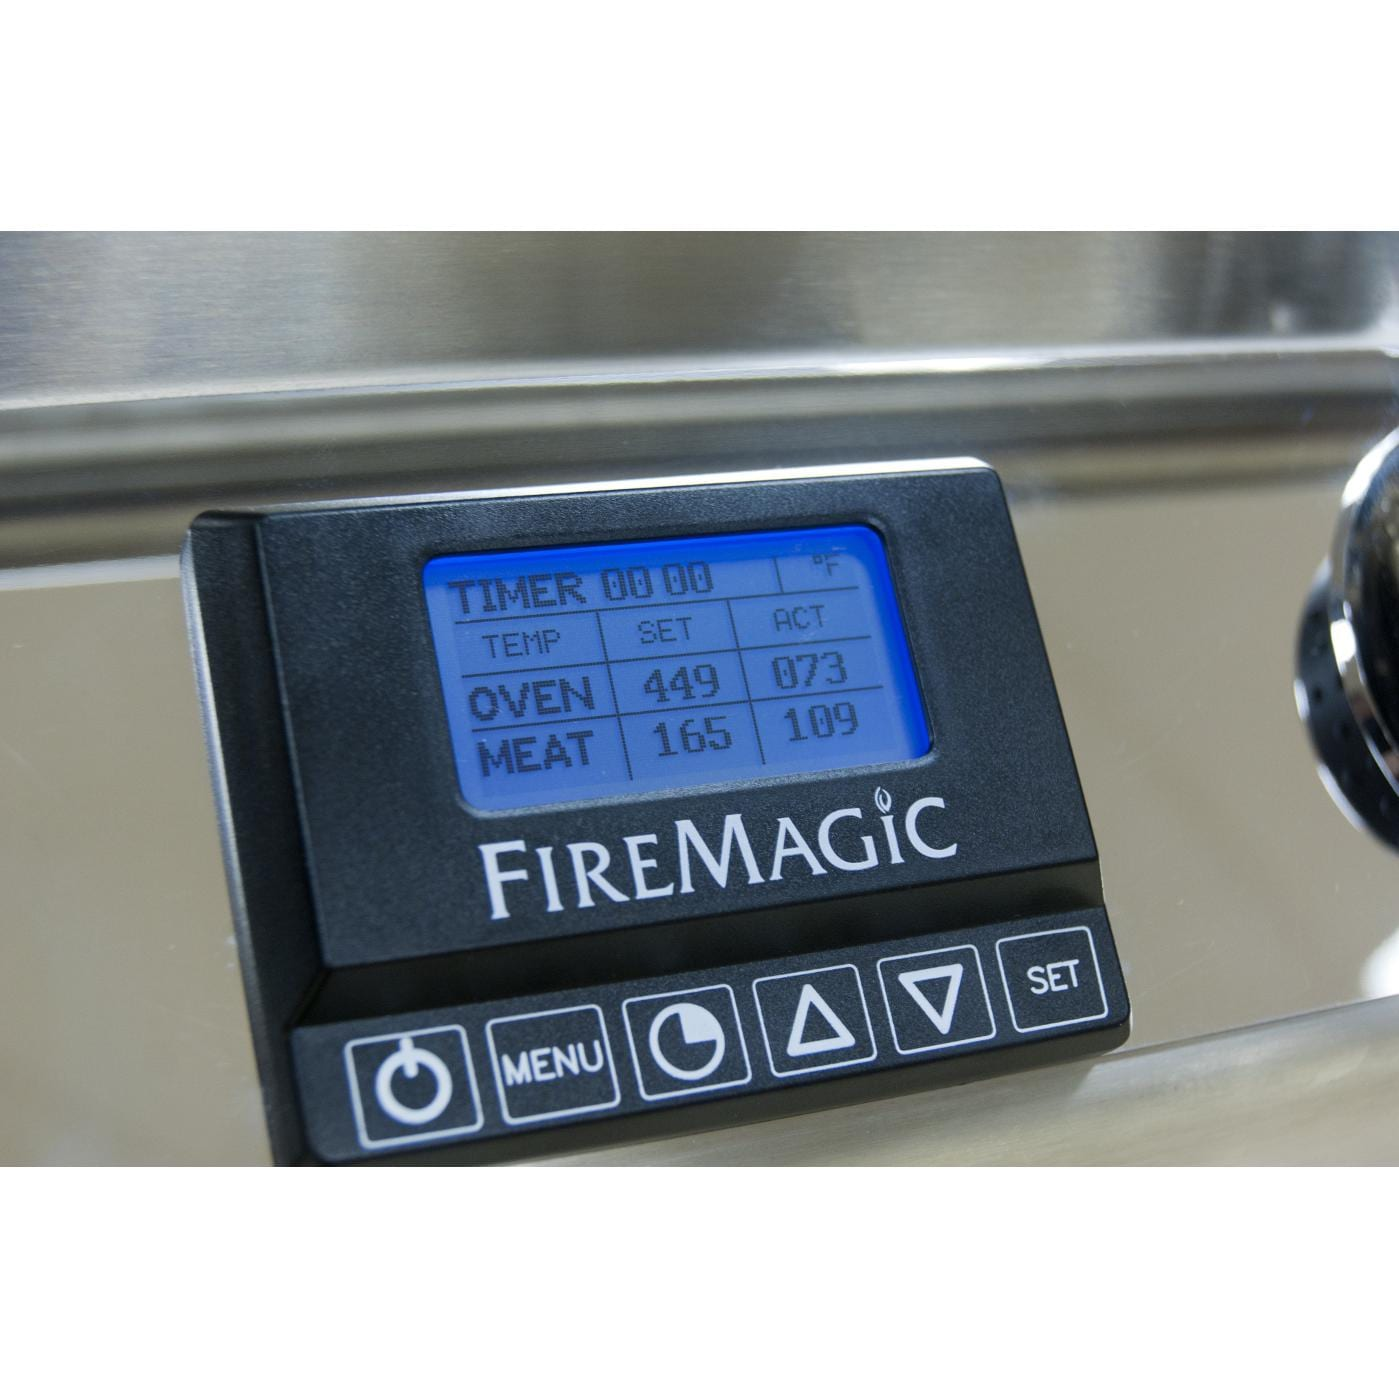 Fire Magic A430s 24 Inch Freestanding Grill - Digital Thermometer